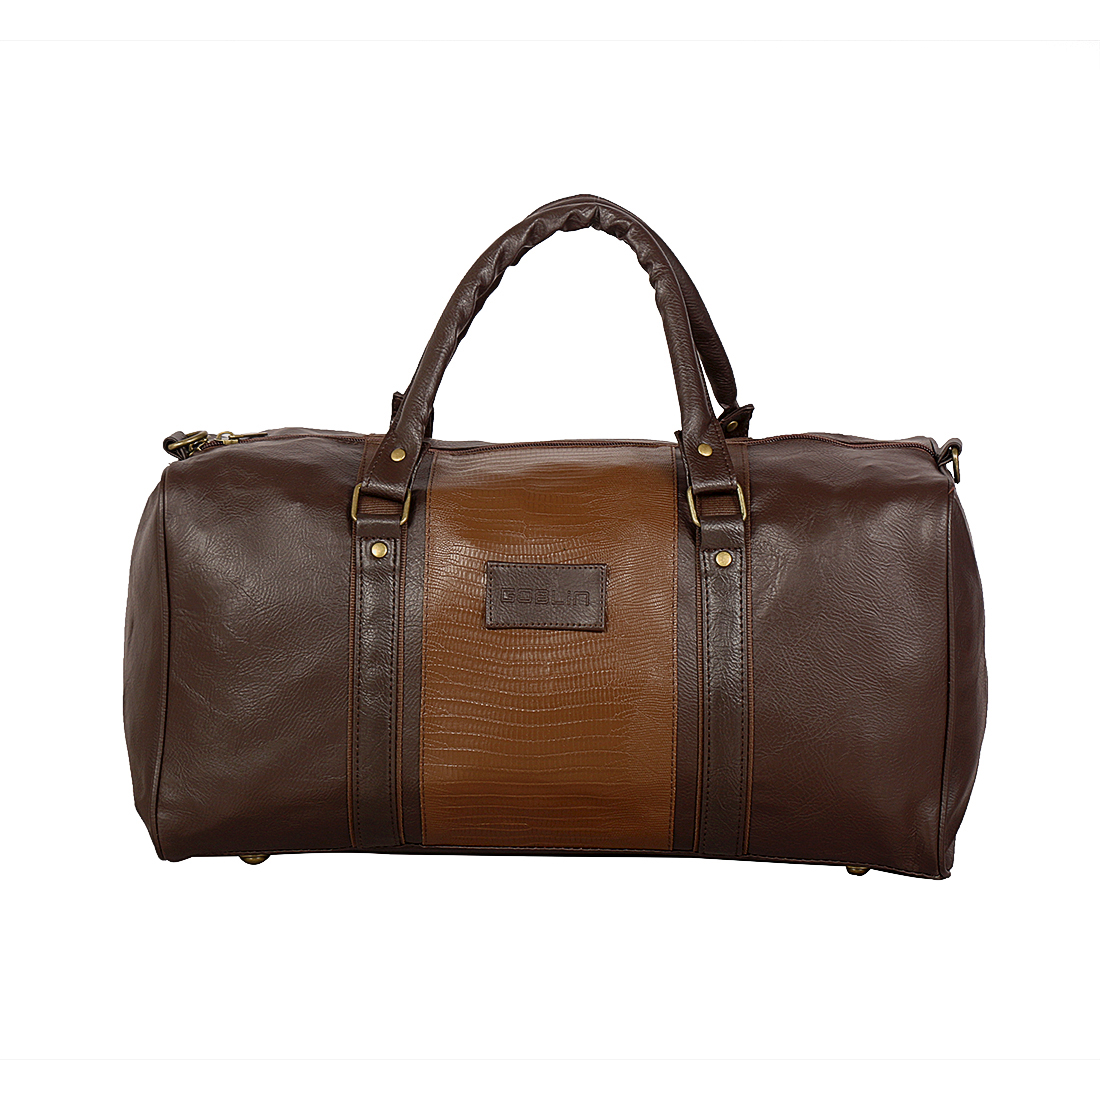 0ebaa17dd3c1 Nexa Goblin Brown Leather Duffle Bag - Goblin India